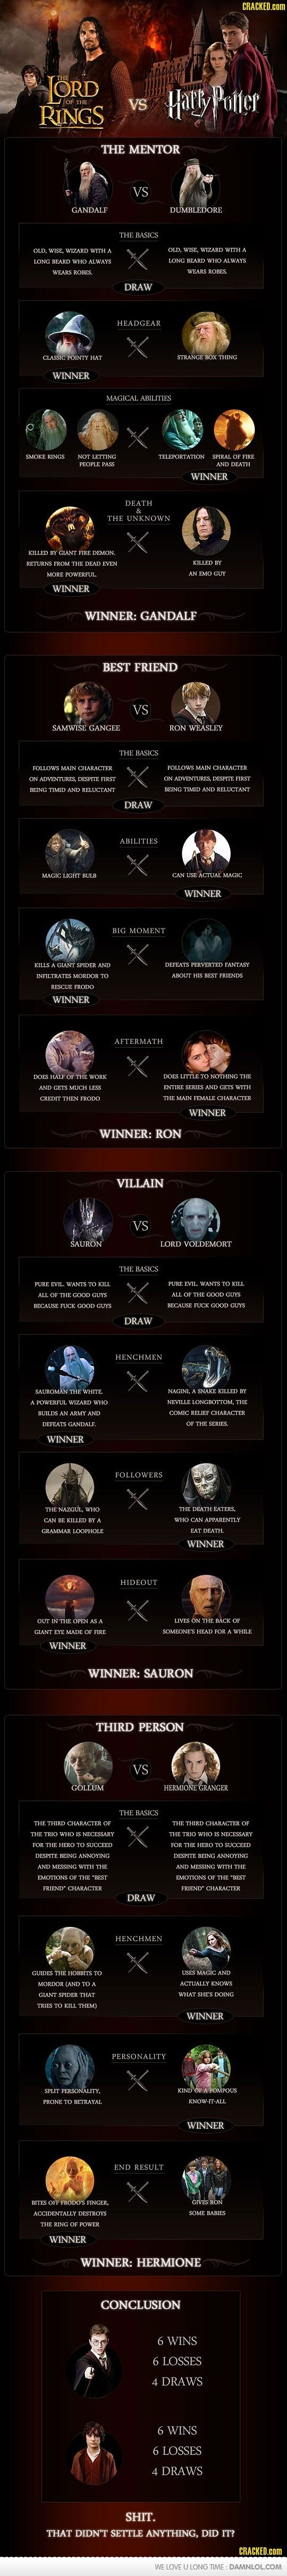 Lord of the Rings vs. Harry Potter.